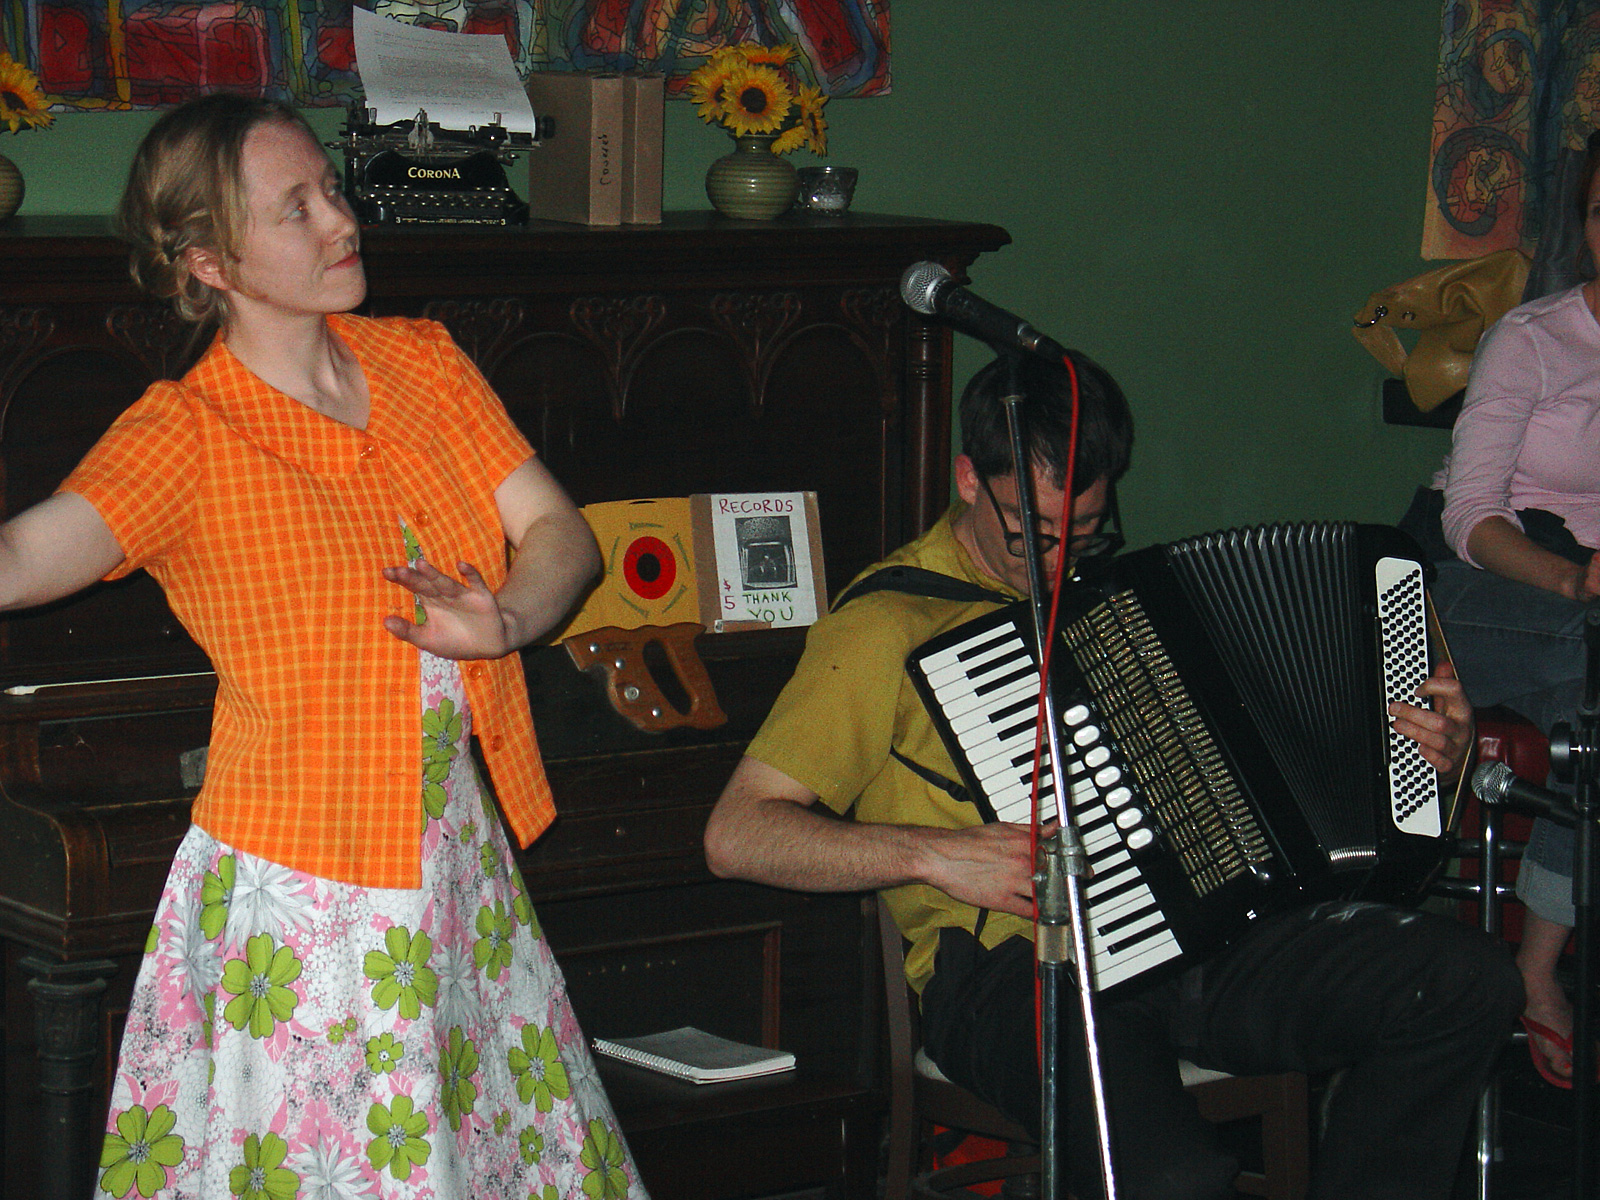 Dreamland Faces performing at Lux in 2005